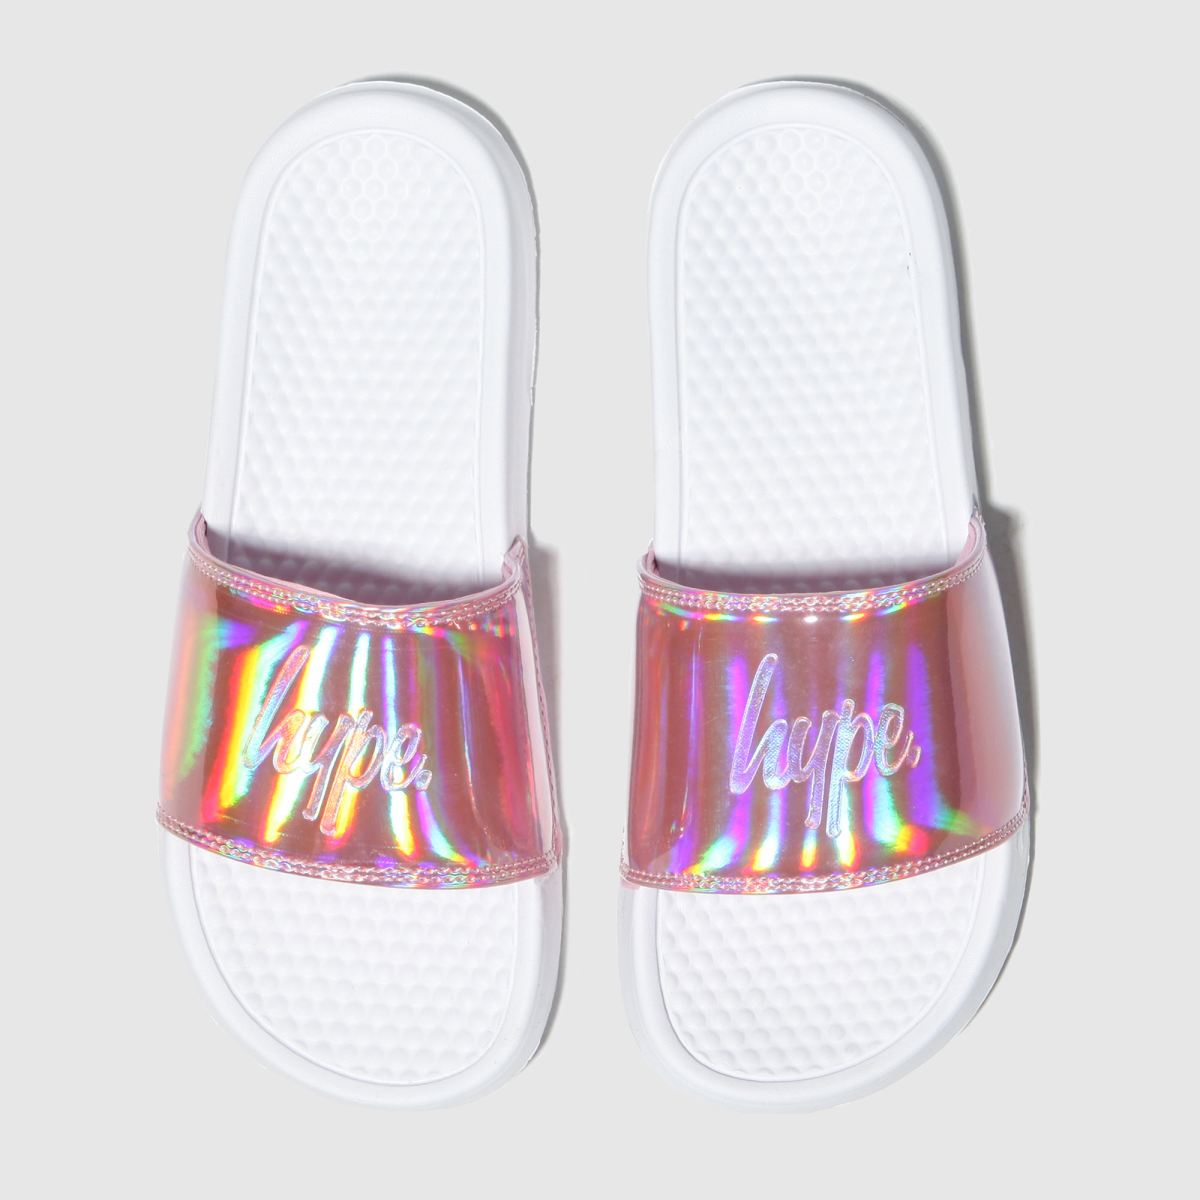 Hype White & Pink Holographic Sliders Sandals Junior